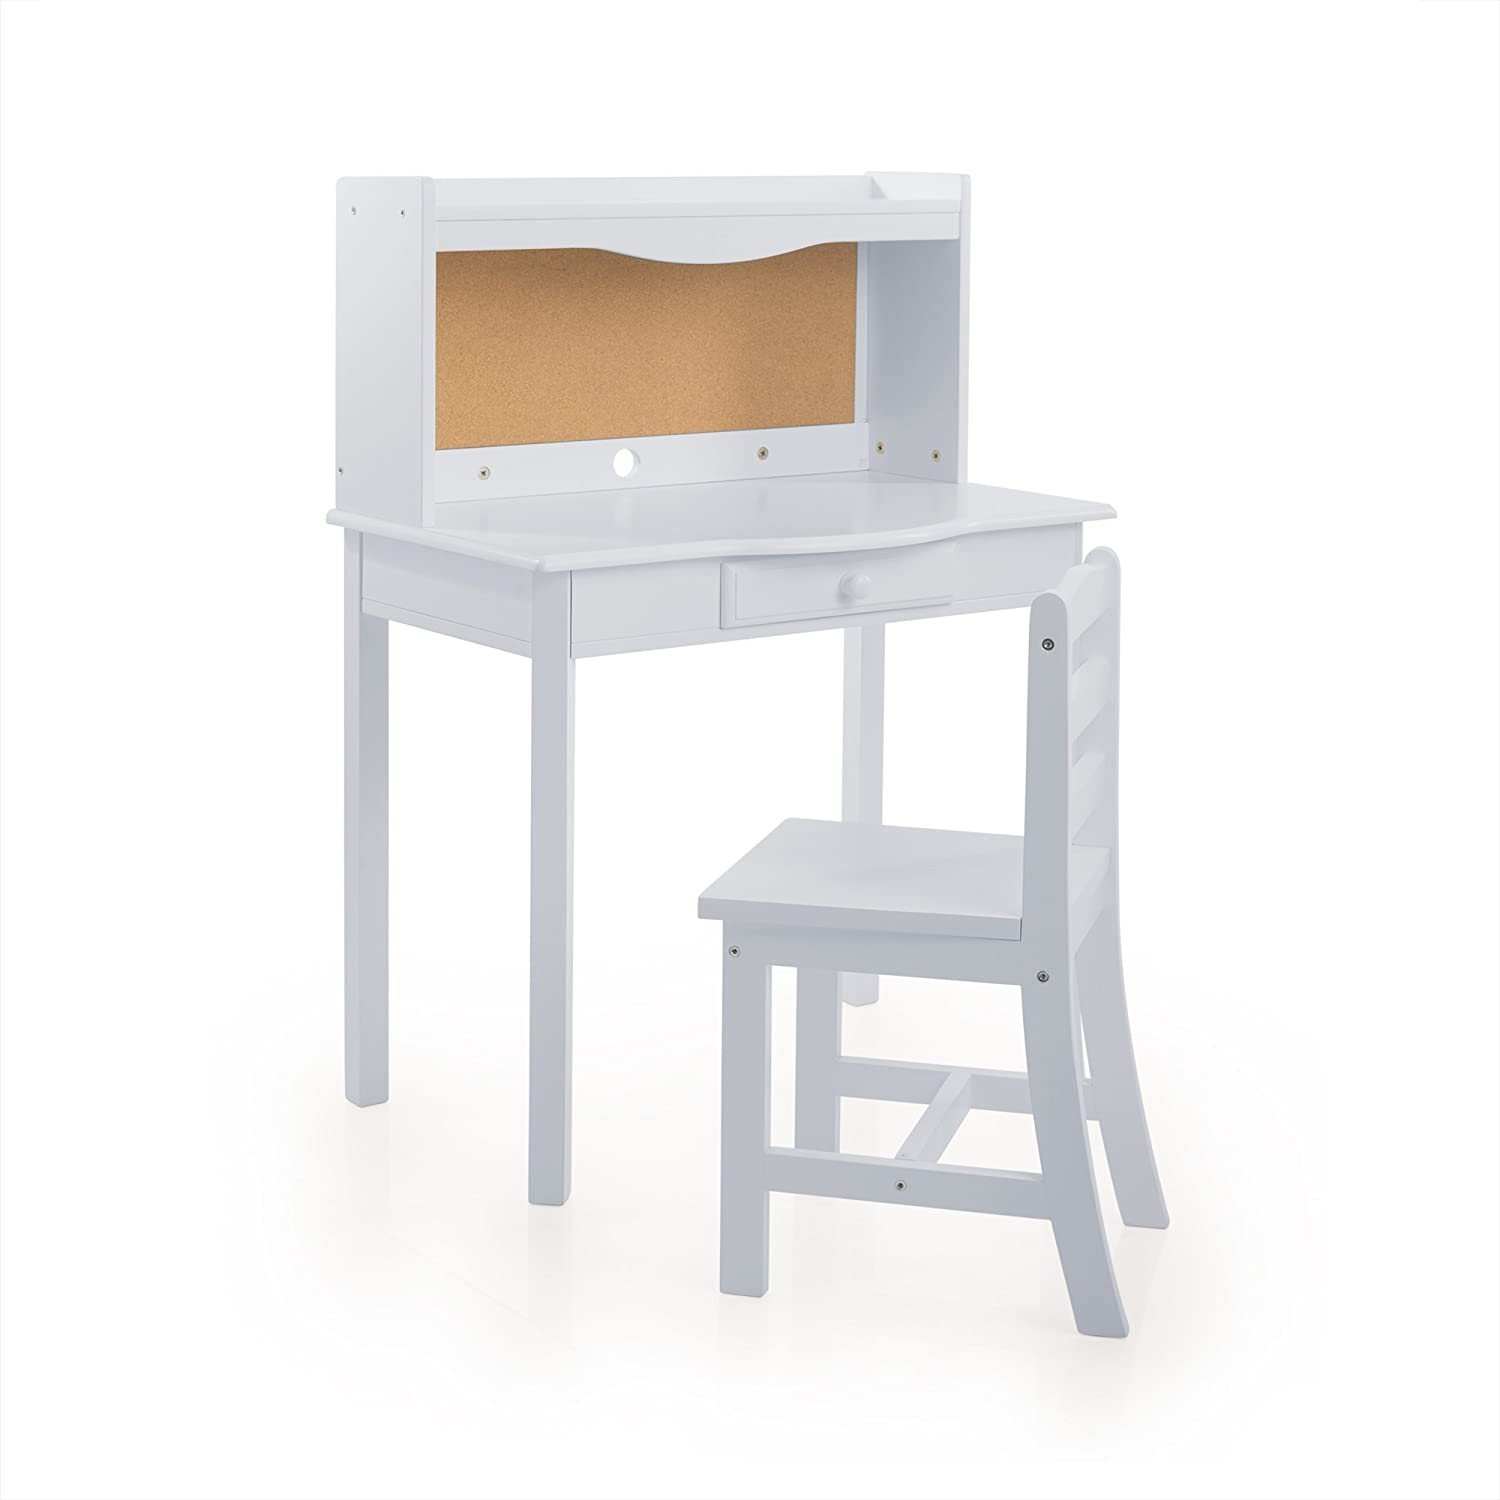 Guidecraft Classic Desk - Gray: Kids Study Table, Children's Furniture Children's Furniture Guide Craft G87812